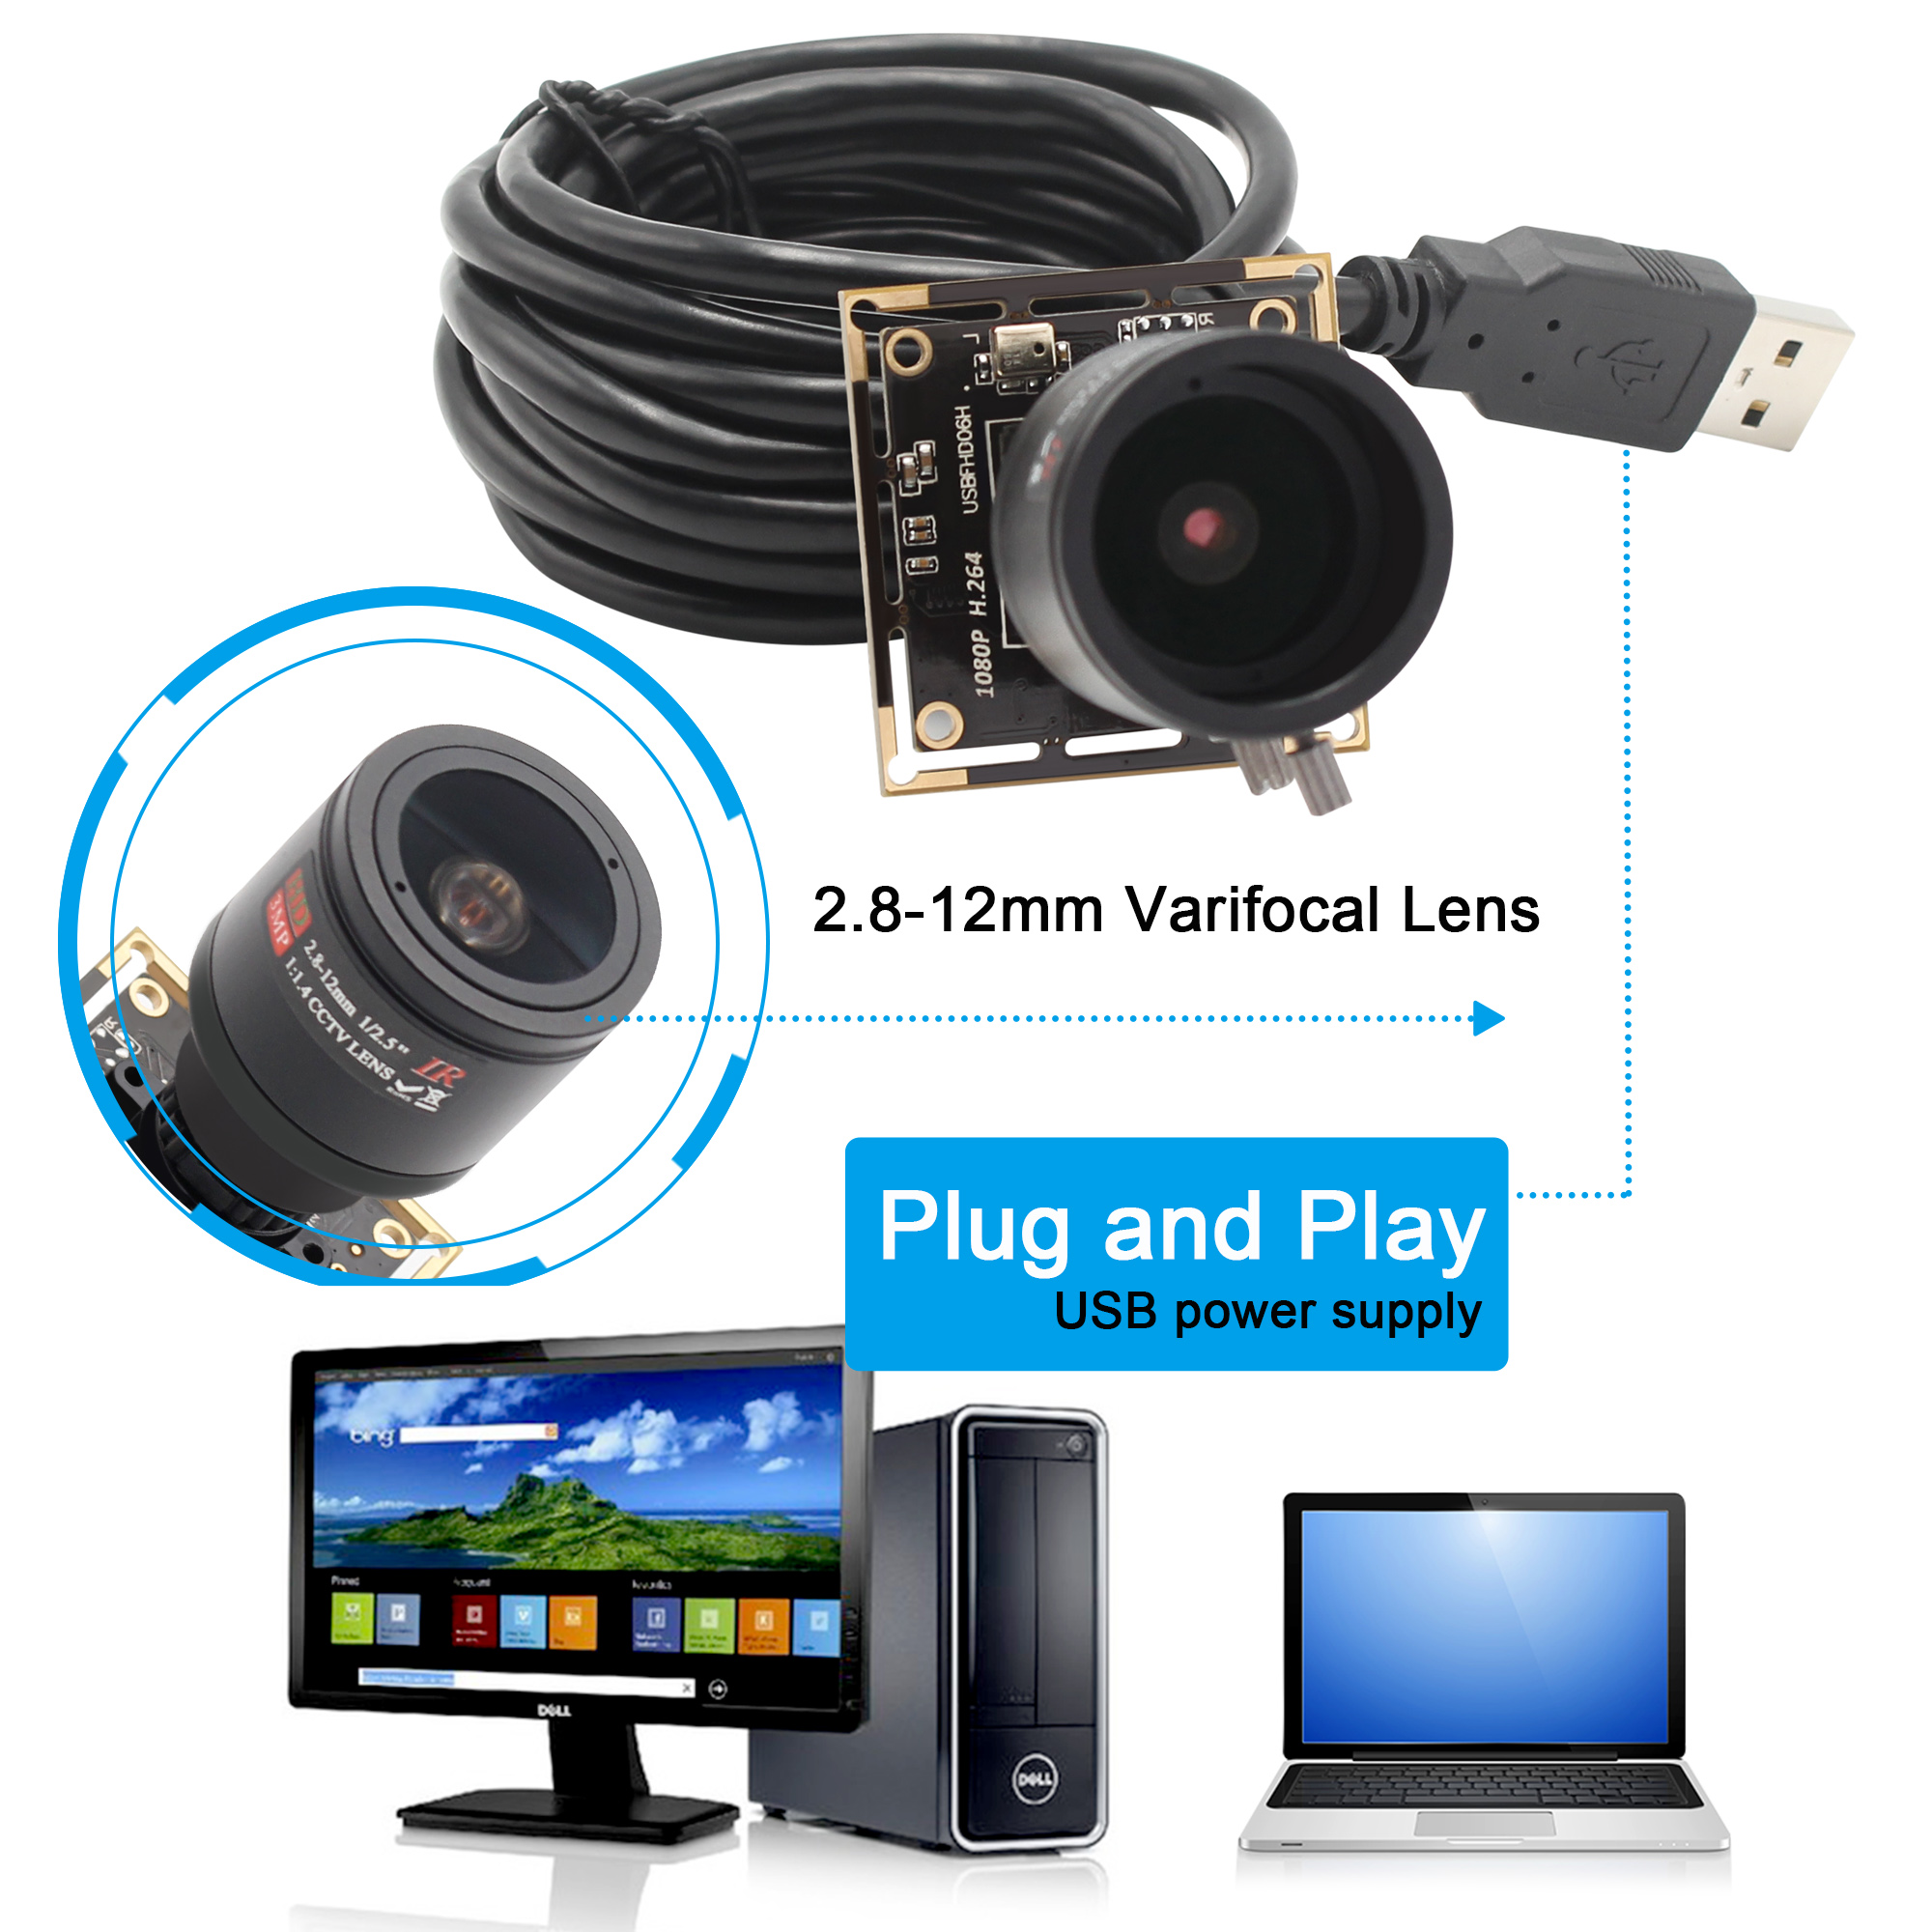 ELP Free Driver Full HD 1080P Sony Sensor M12 2.8-12mm varifocal lens usb camera